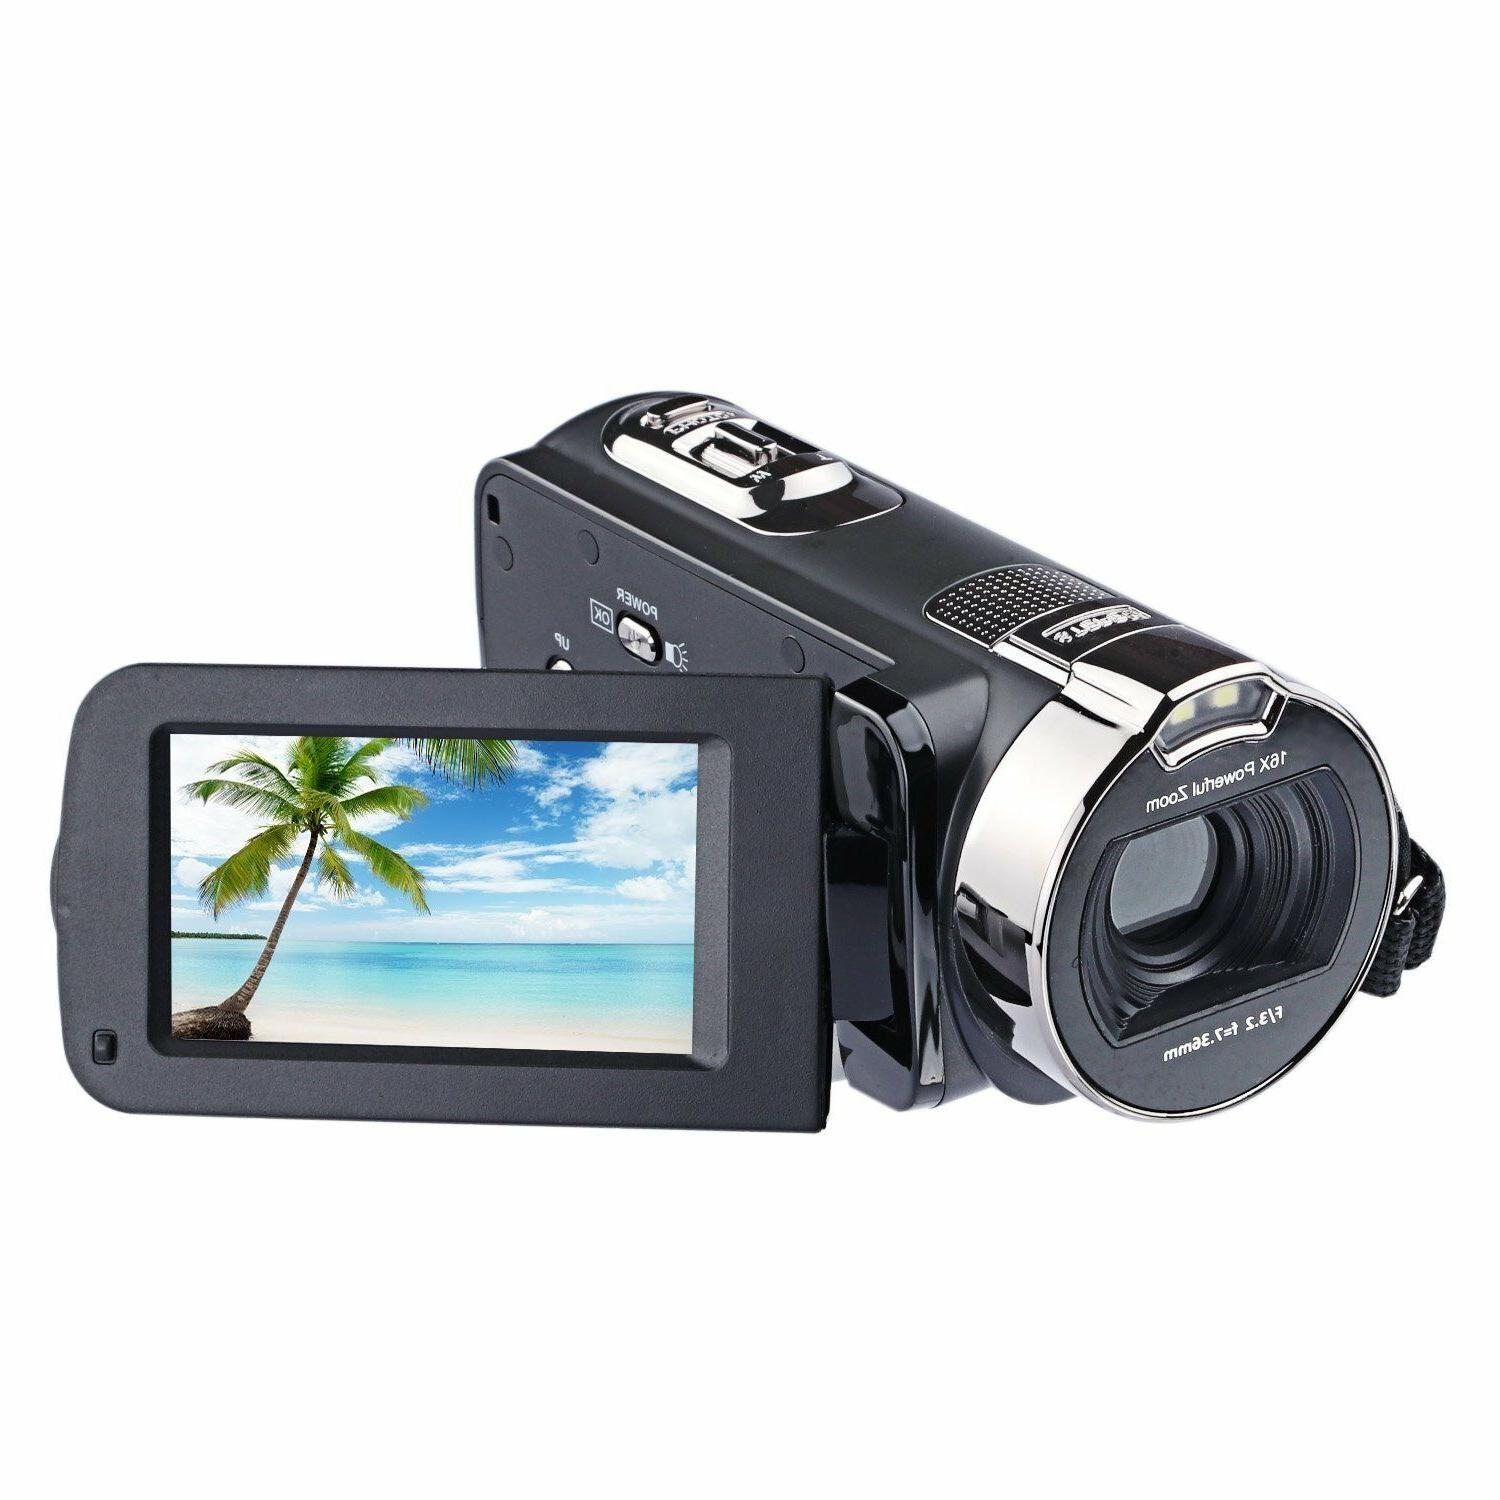 "New Puto 2.7"" Video Camcorder"